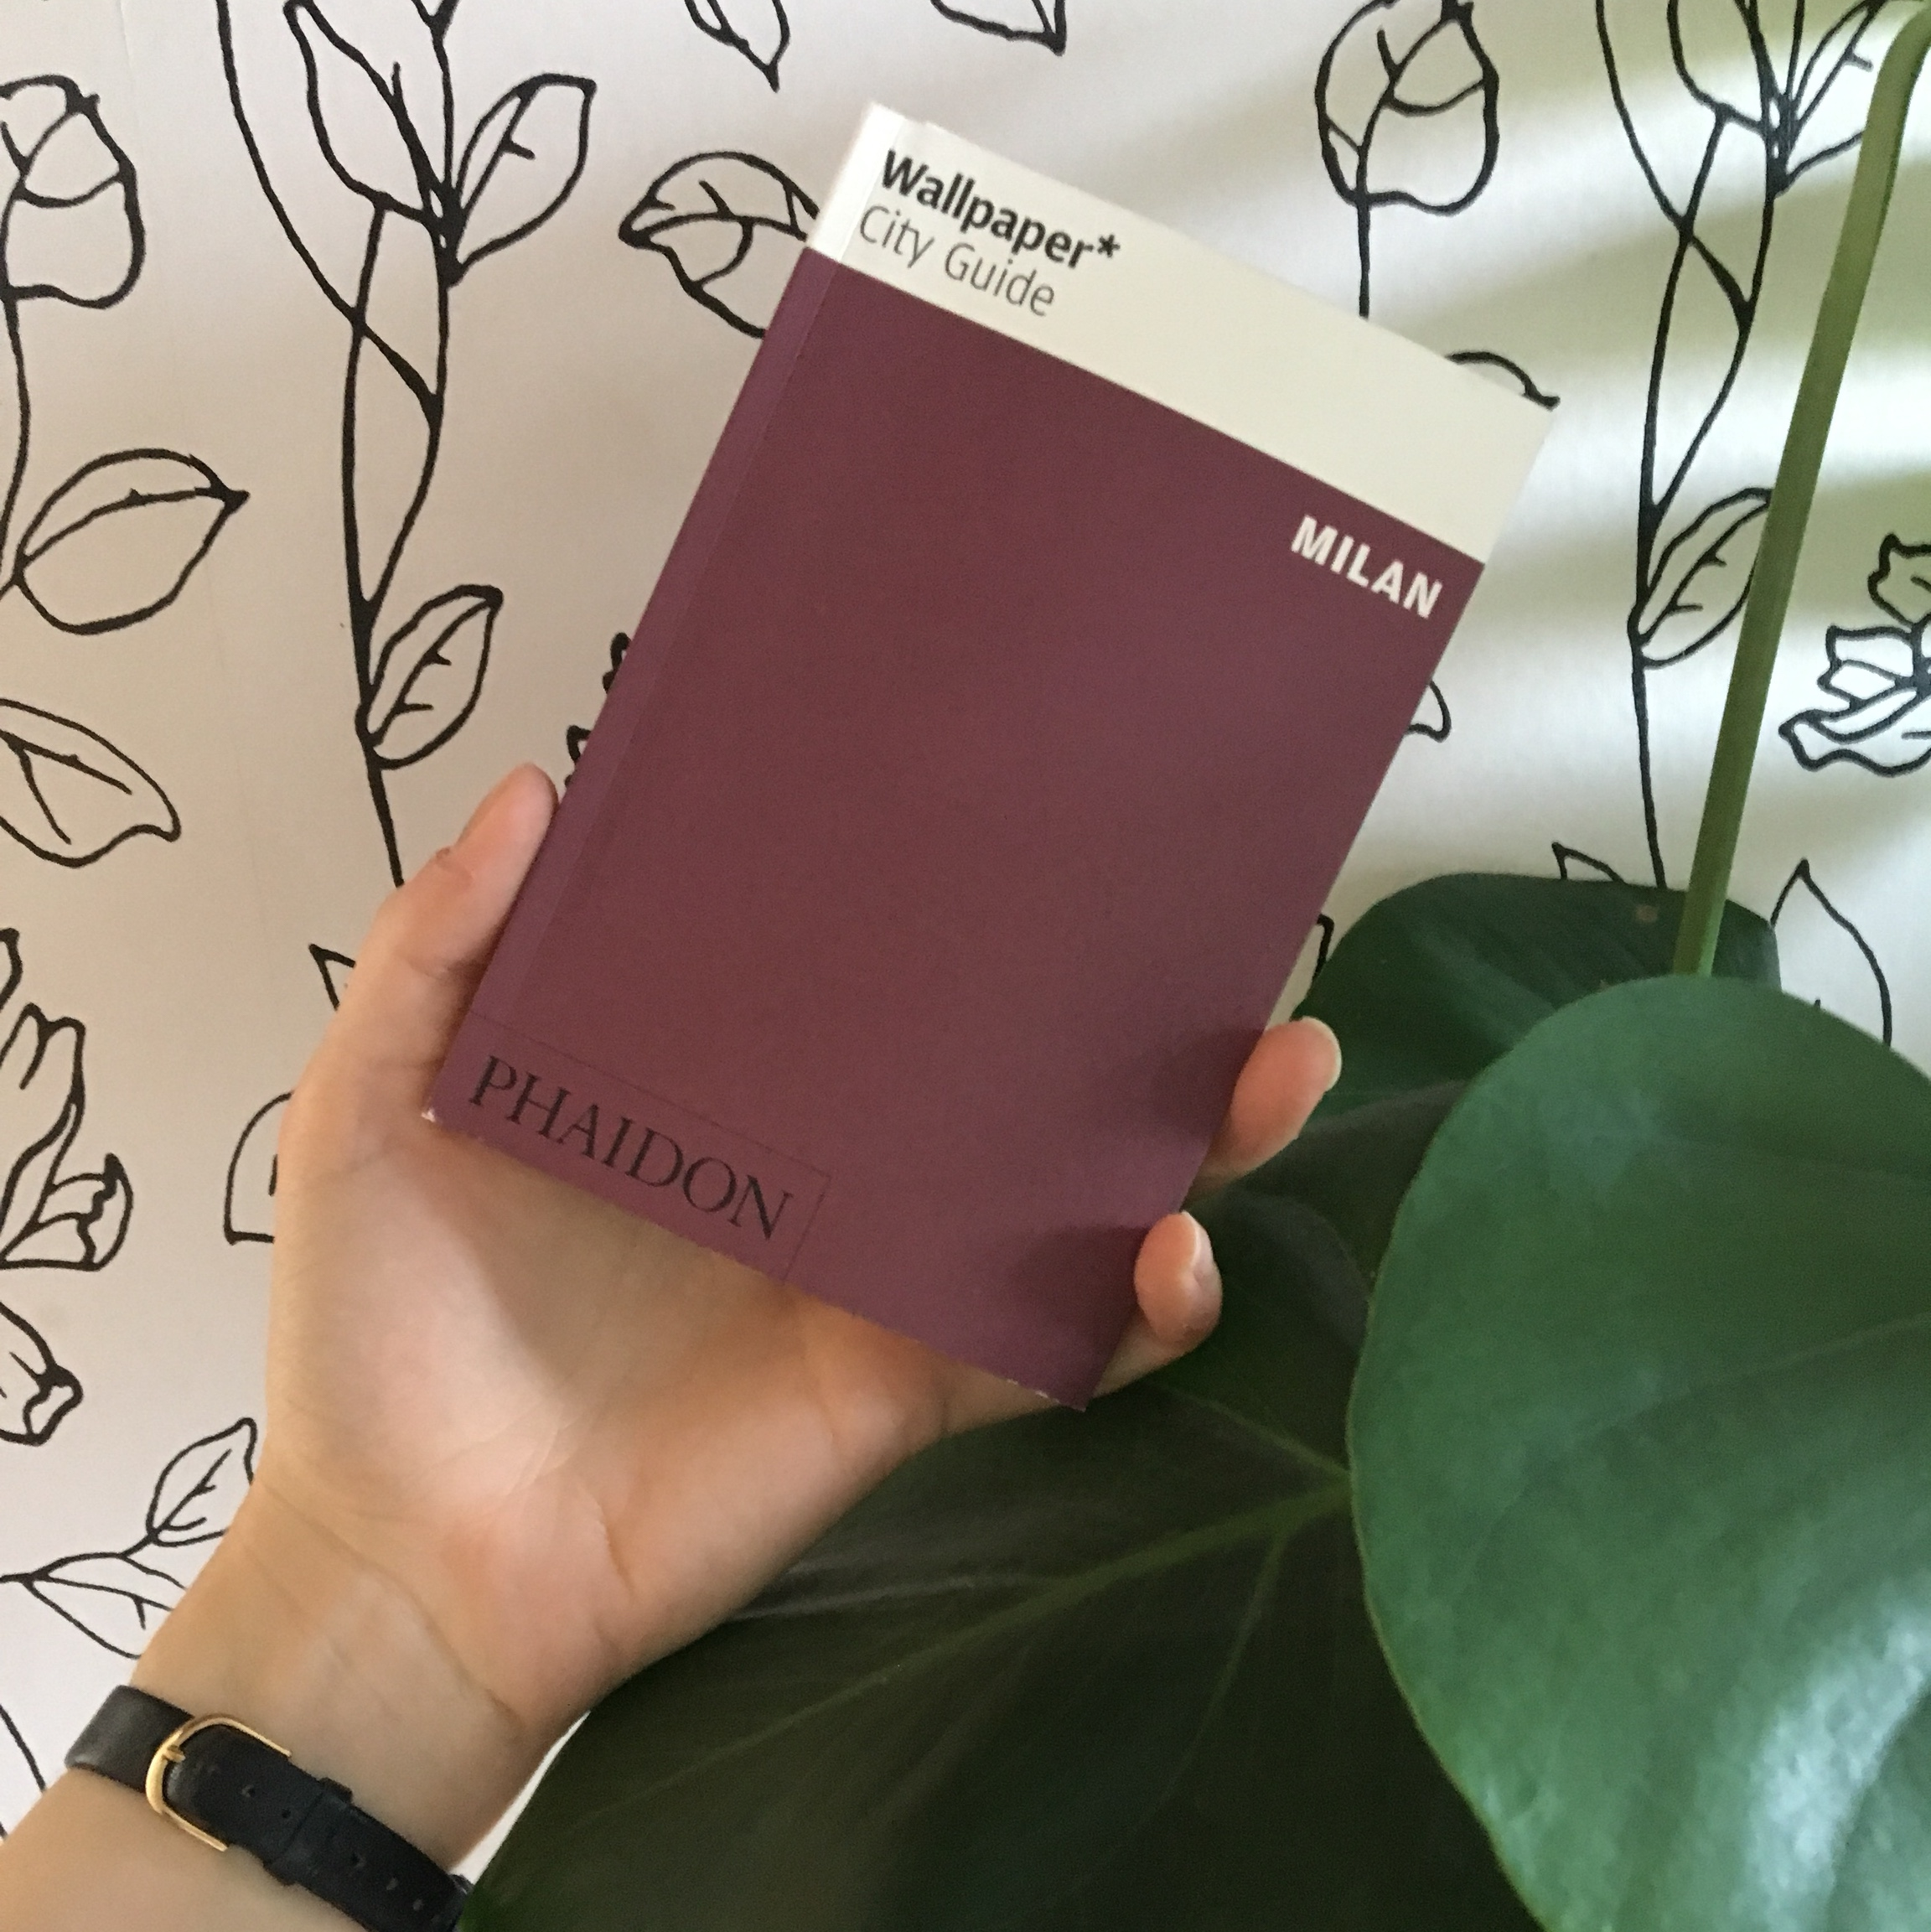 Wallpaper Milan City Guide Phaidon Never Been Used Depop